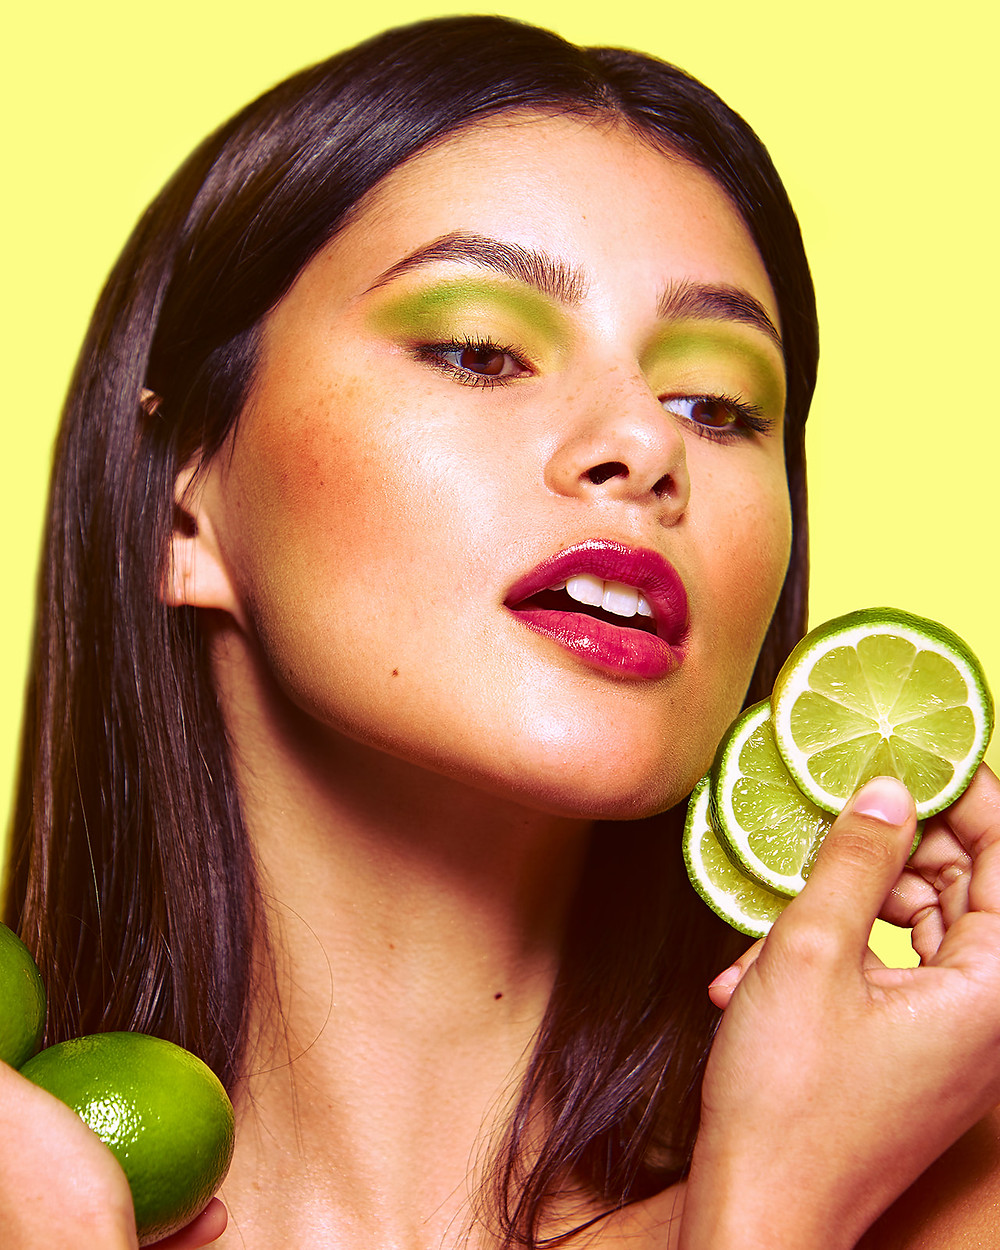 Model Genevieve van Dam holds sliced and whole limes in a fruit-inspired beauty editorial photo shoot published in New Face Fashion Magazine and photographed by commercial and fashion photographer Patrick Patton.